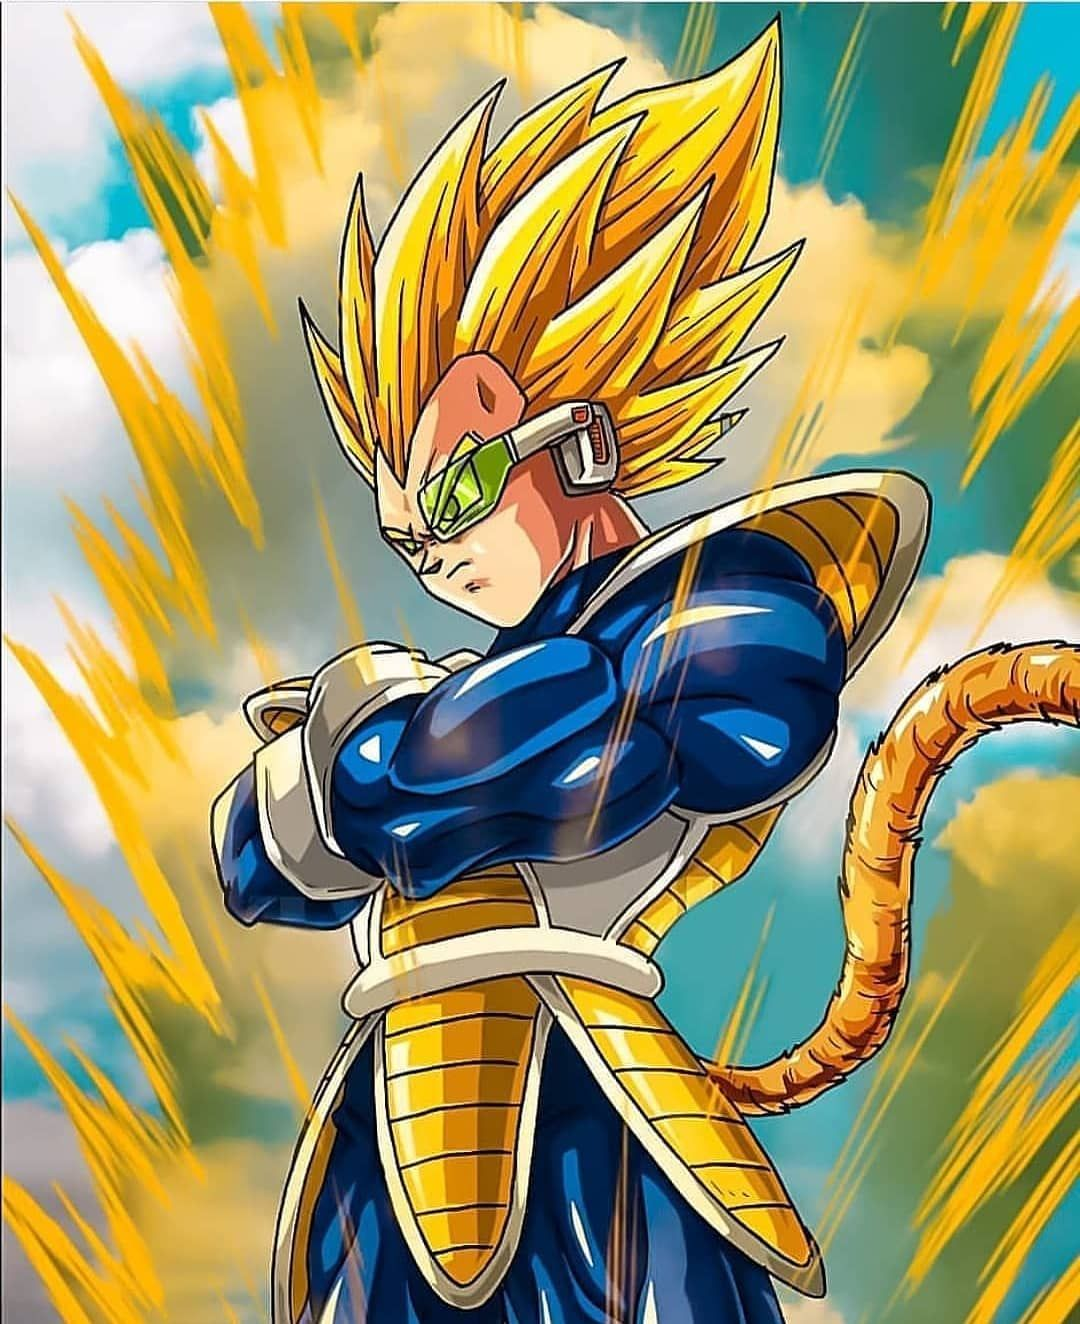 Going Super Saiyan In My Old Look Credits To The Artist